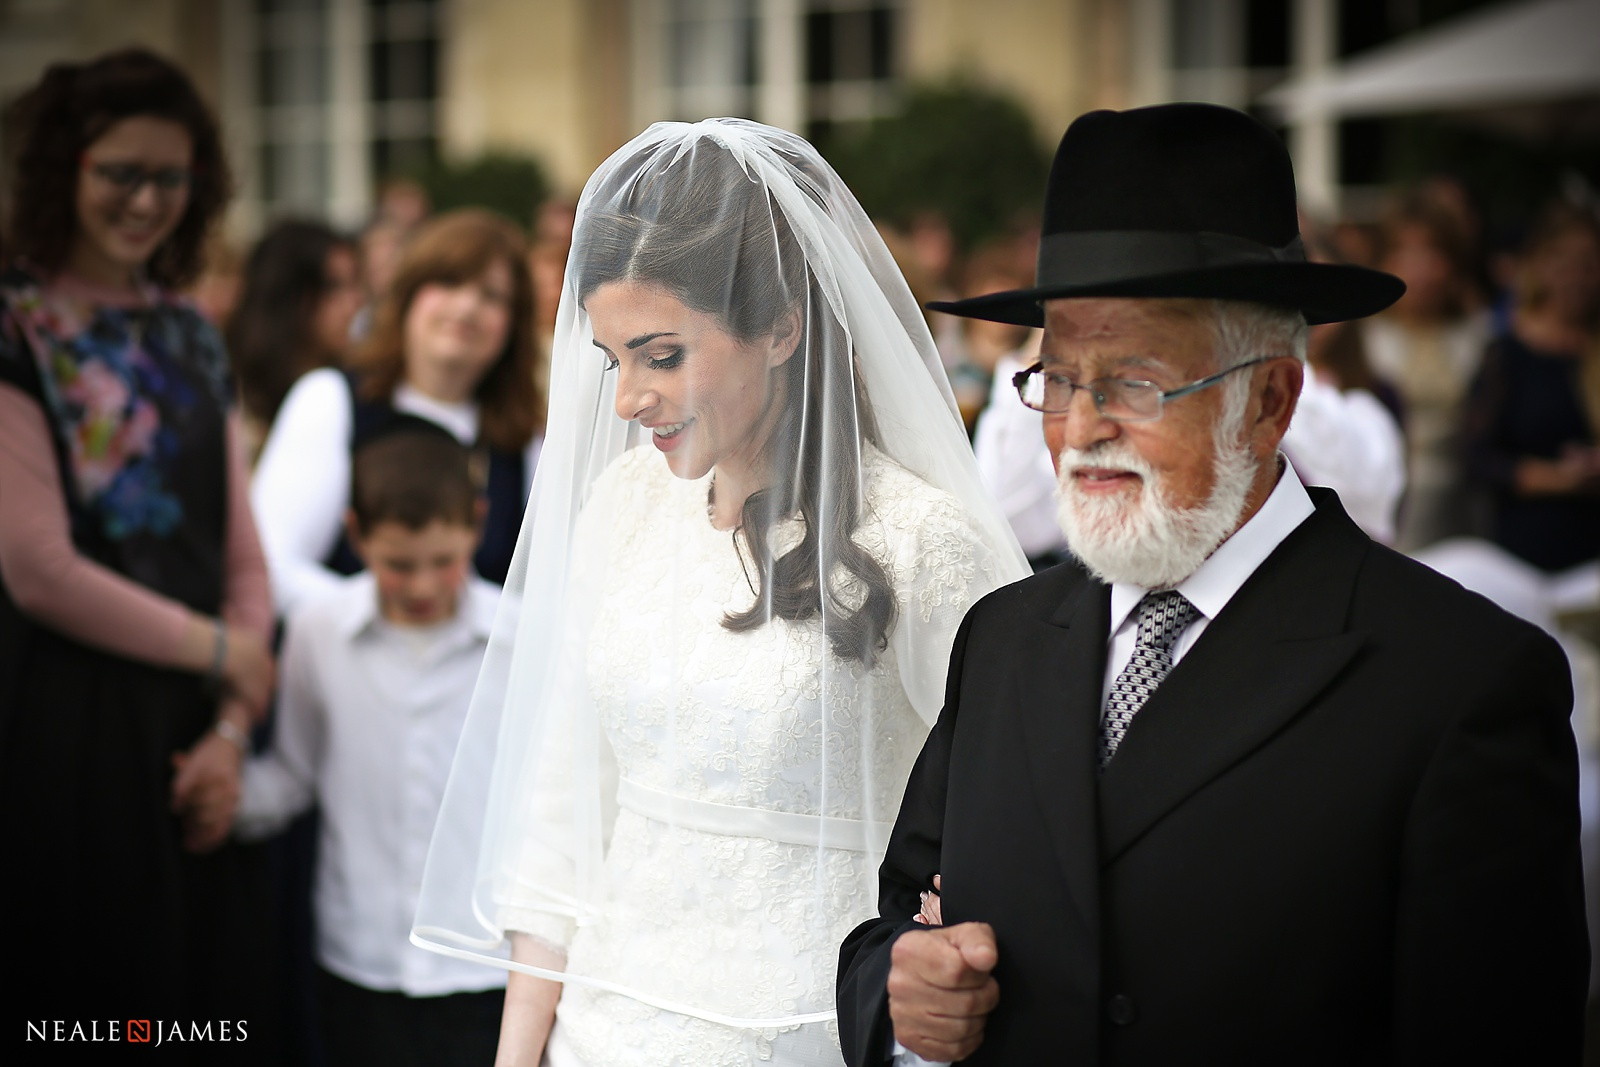 A father leads his daughter down the aisle at Woburn Abbey Sculpture Gallery